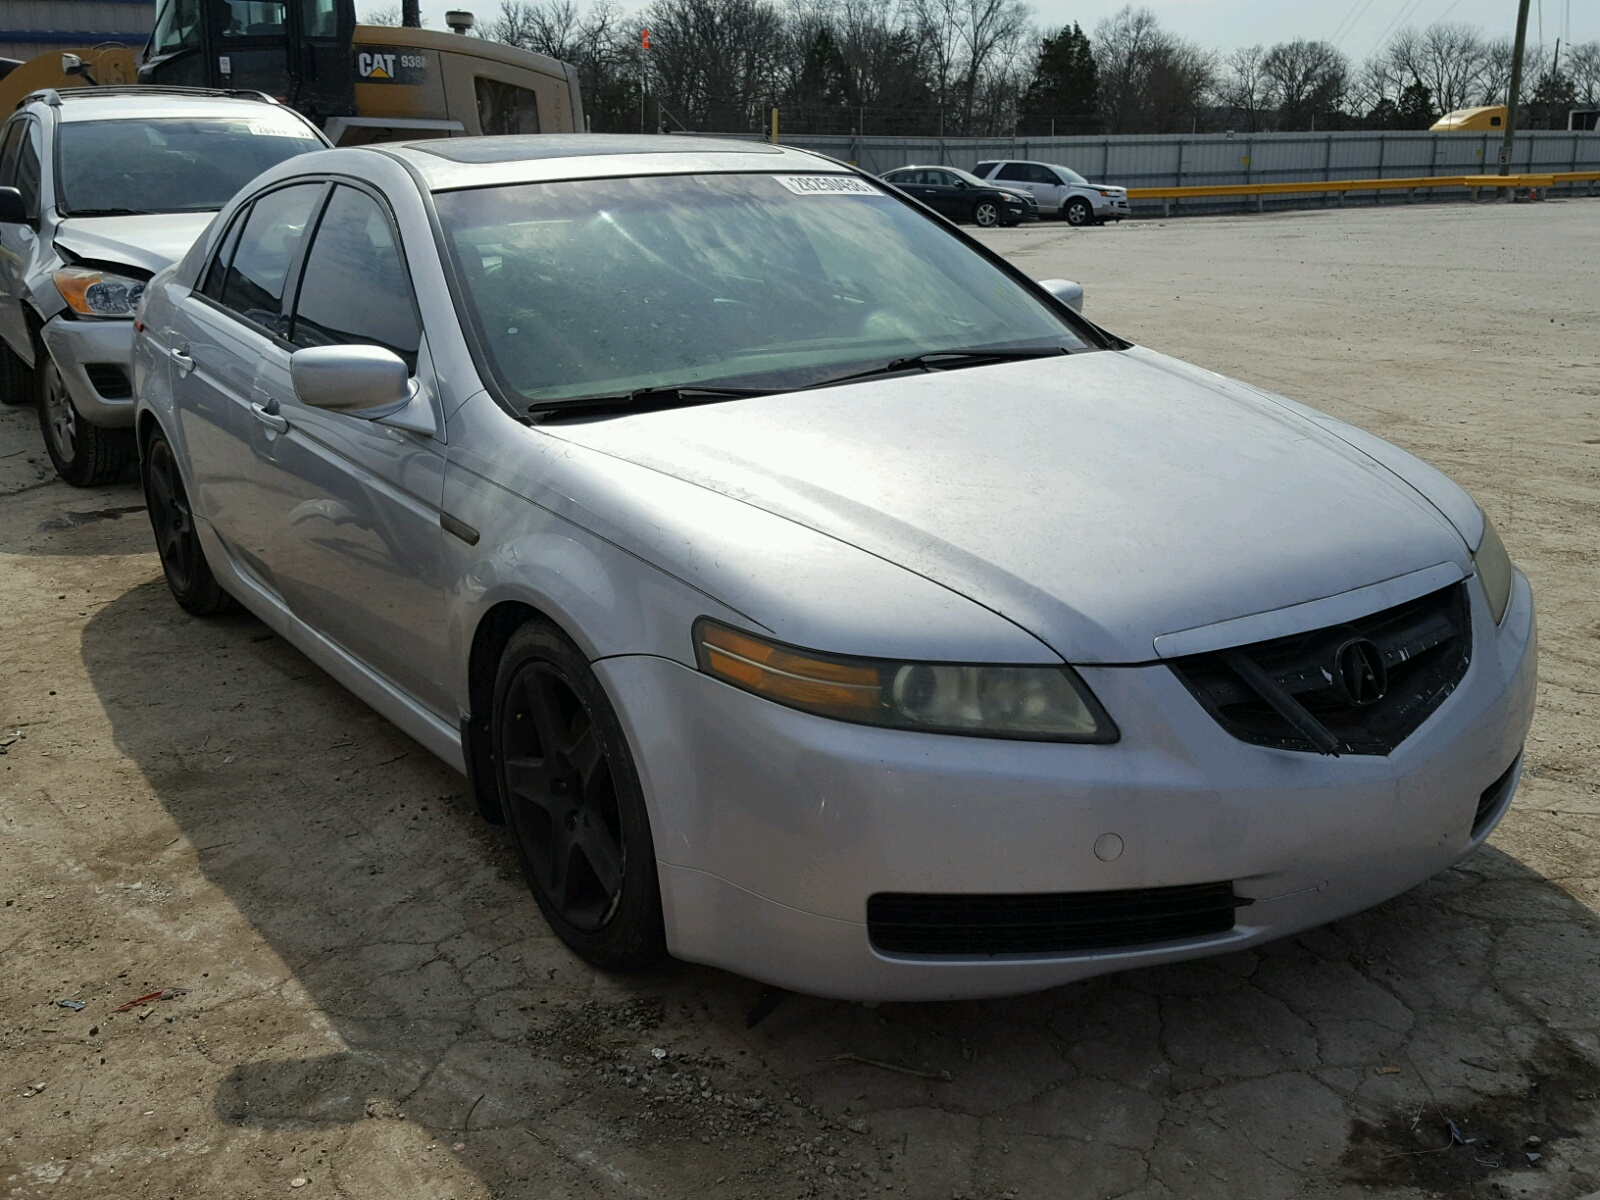 nashville tl en auto certificate silver title sale for online carfinder auctions in lot tn copart left of acura on view